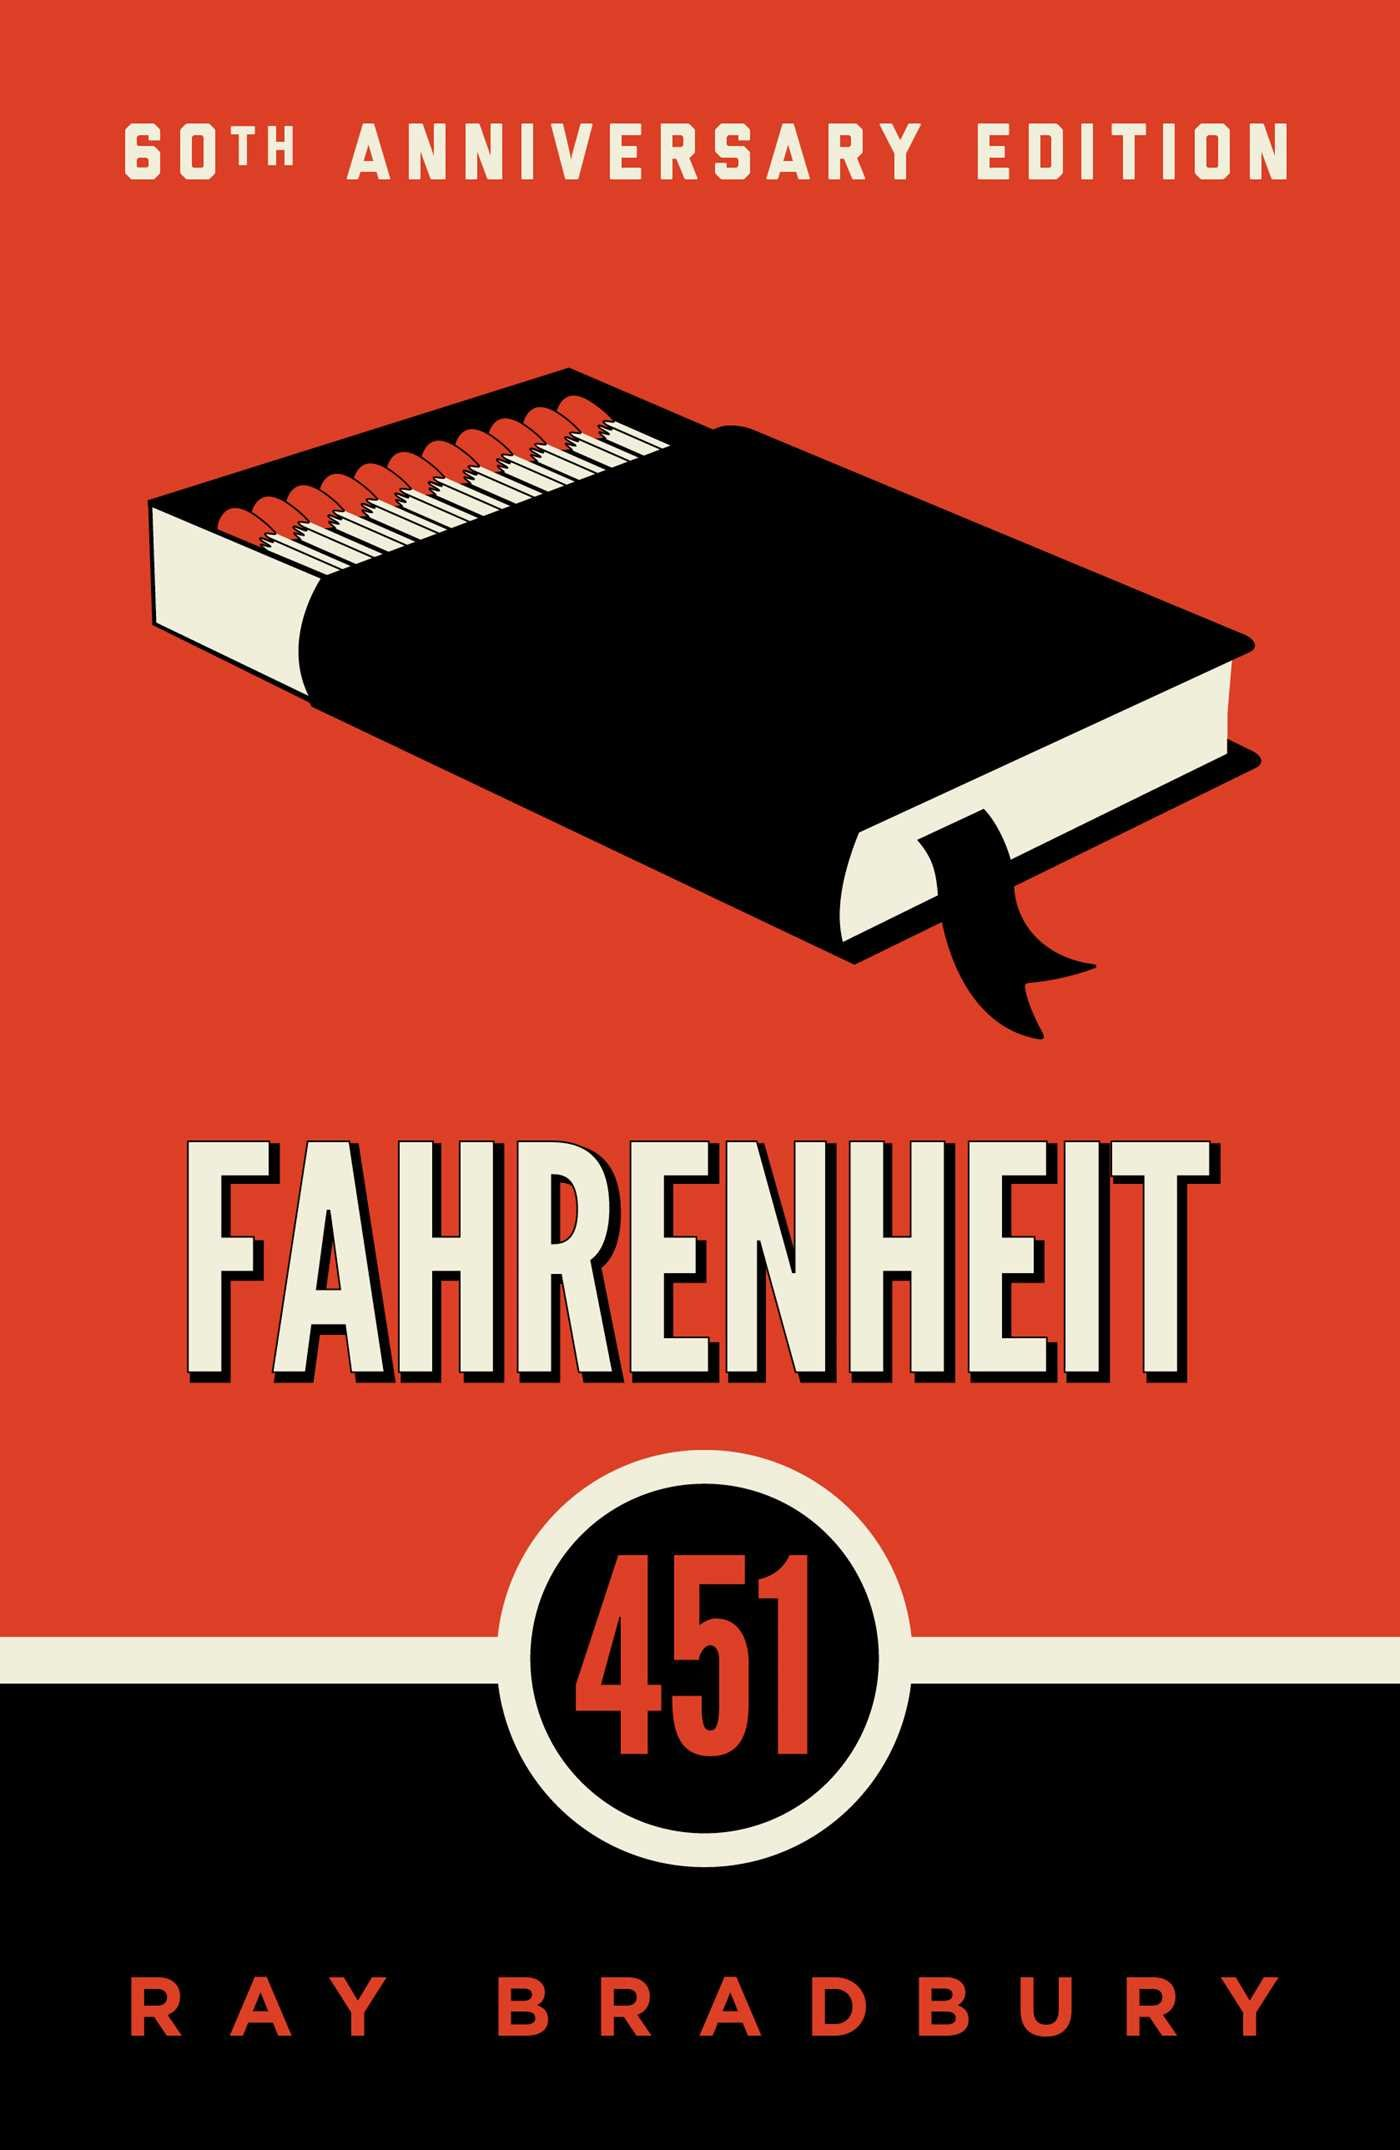 Image result for fahrenheit 451 book